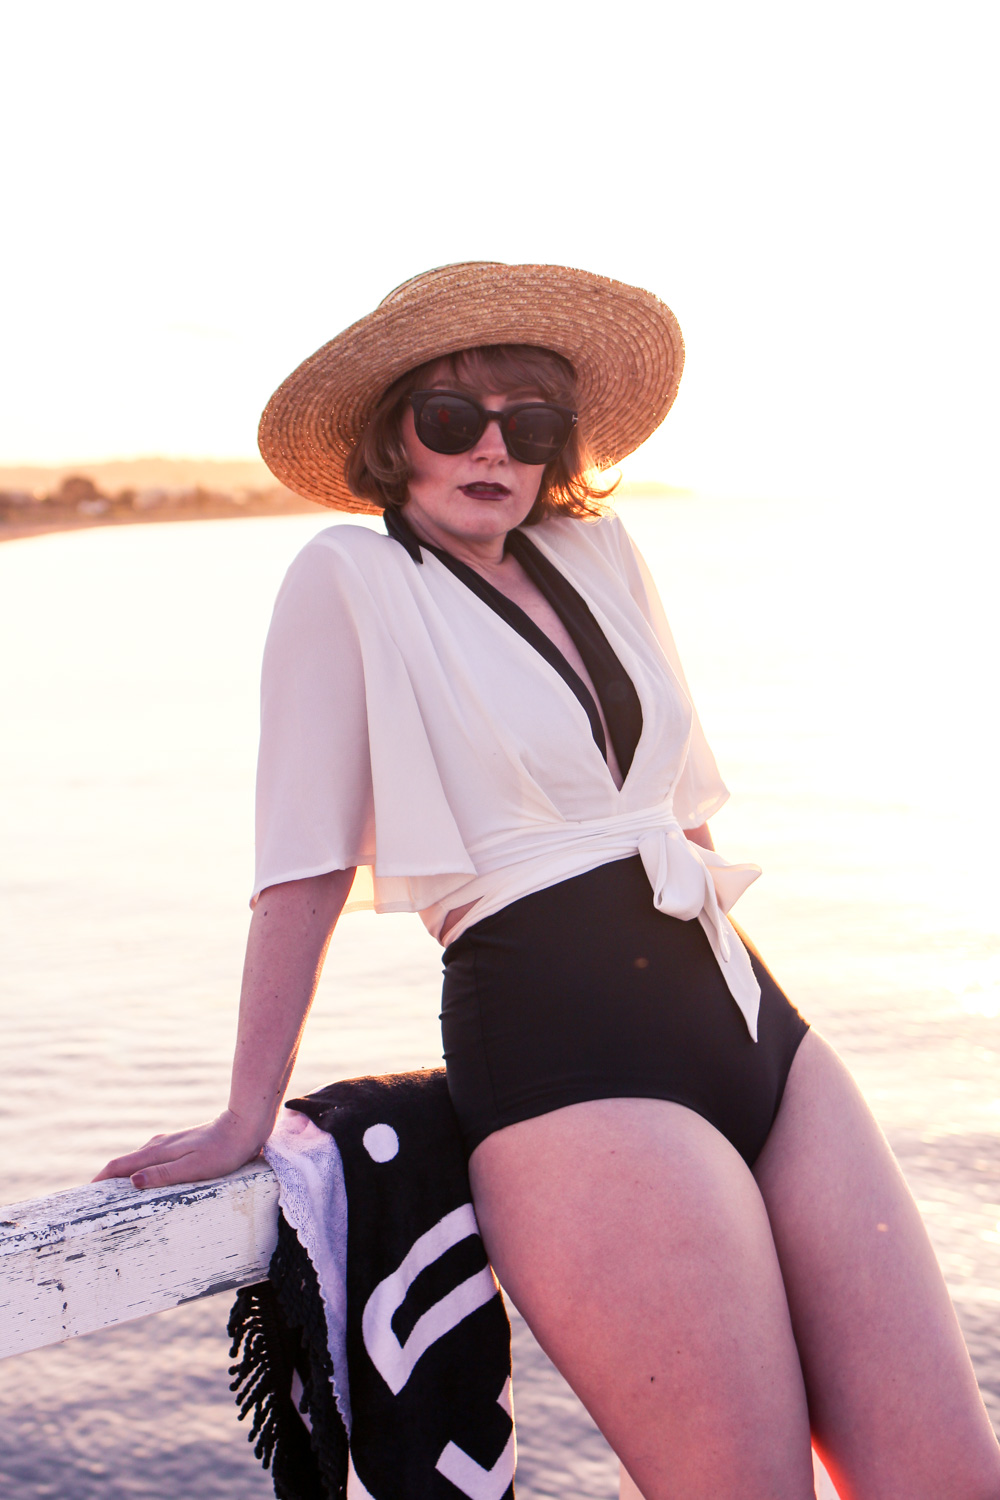 @findingfemme wears black and white bikiniboo swimwear at the beach